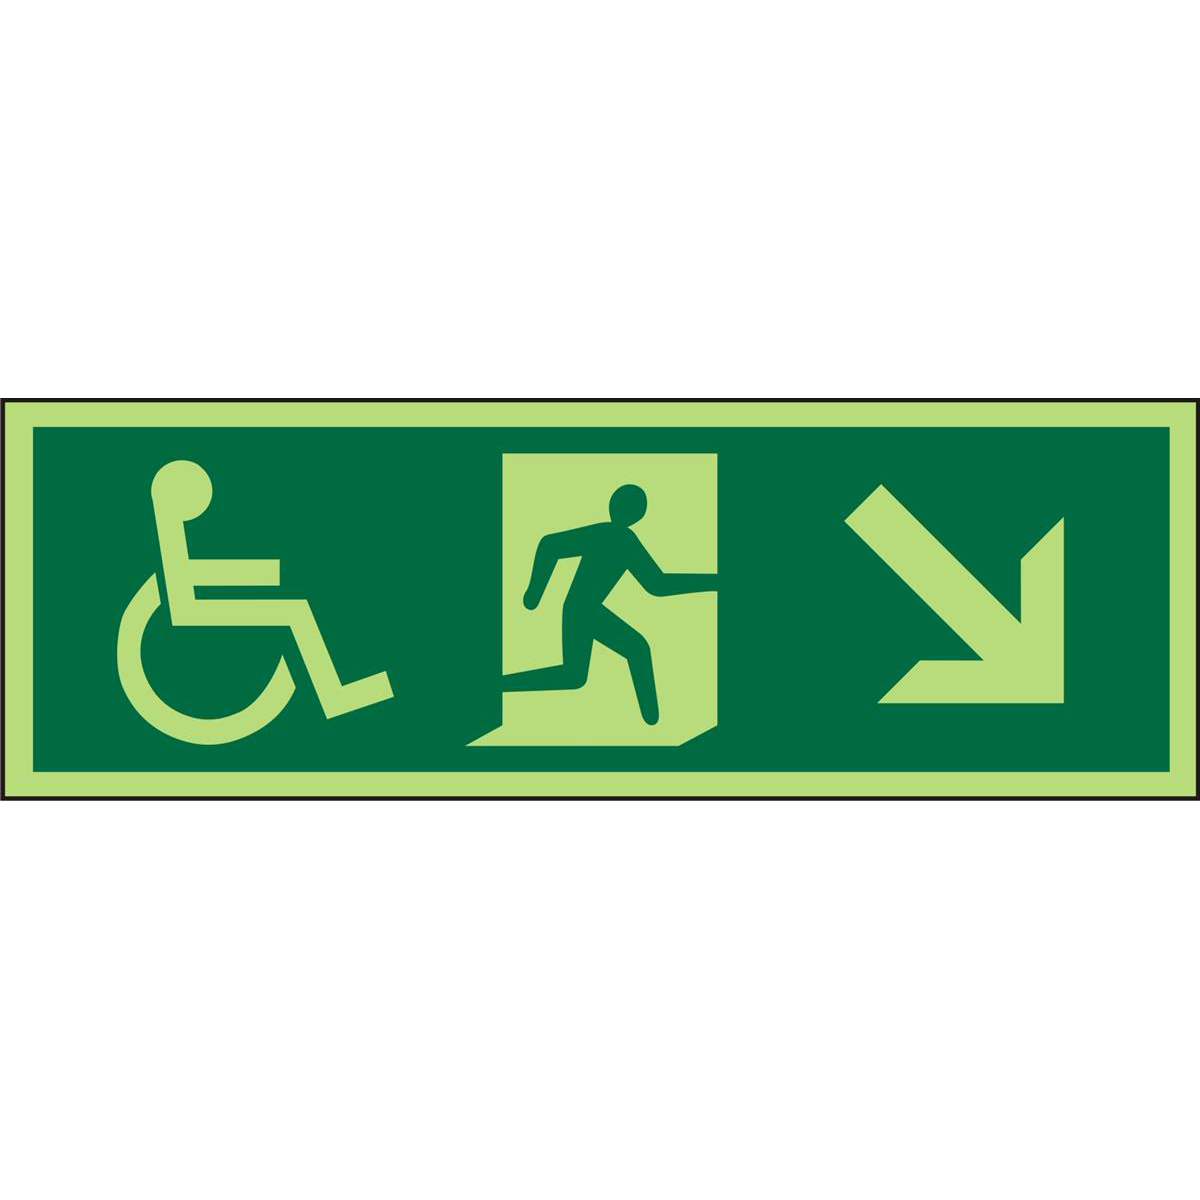 Photol ExitSign 2mm Wheelchair Picto/​Manrun rightArrow downright Ref PDSP061450x150 *Upto 10Day Leadtime*